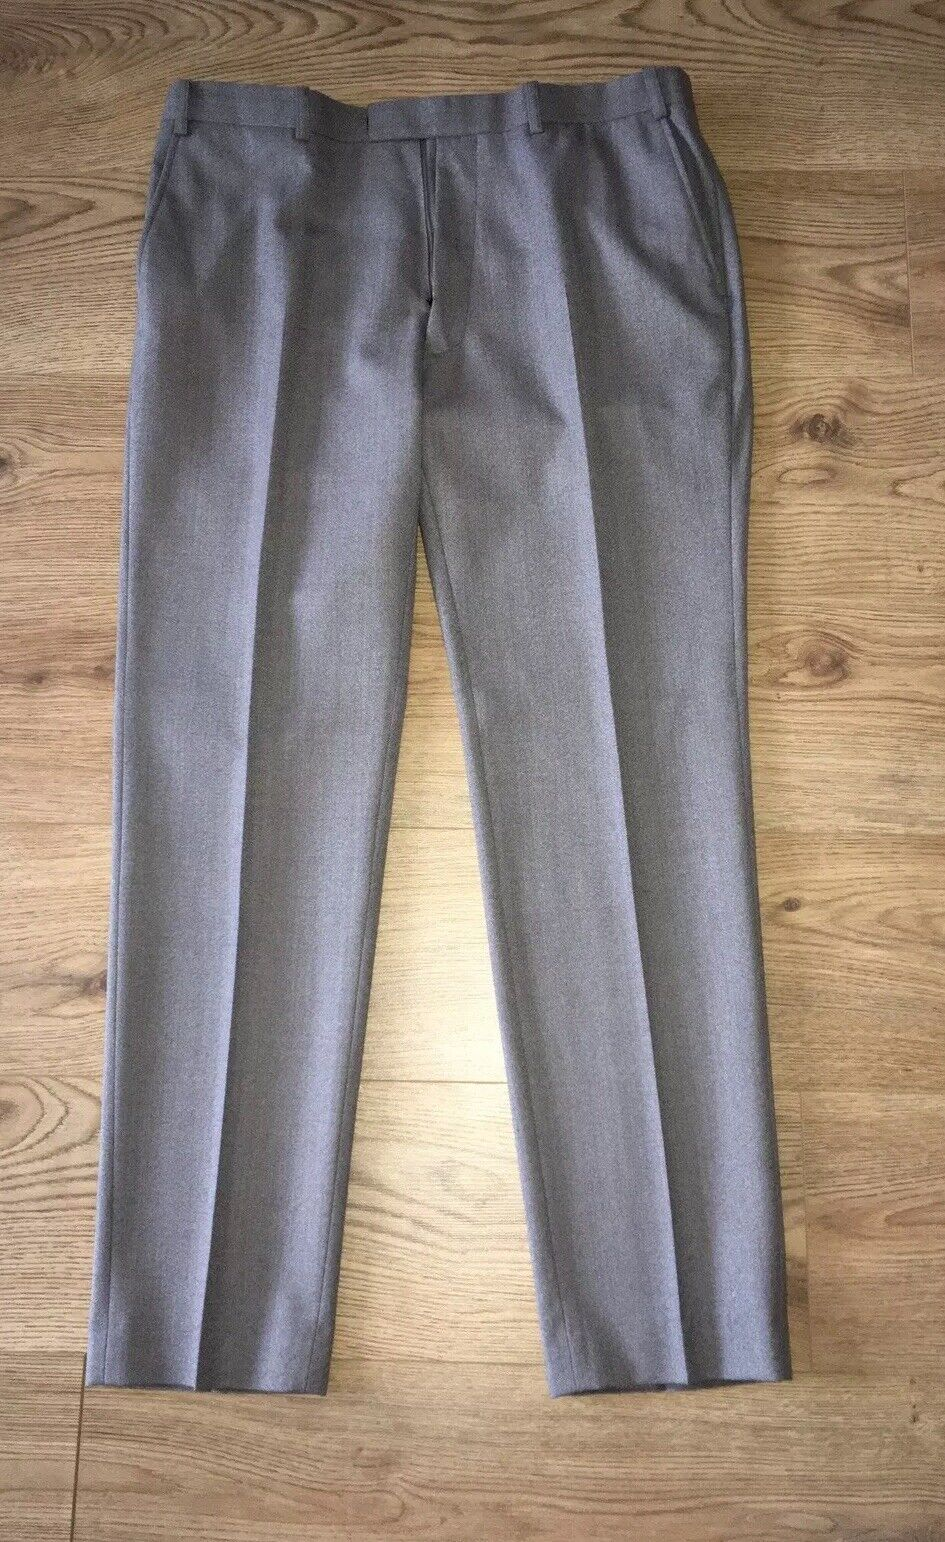 Men's French Connection Grey Slim Fit Formal Trousers Size 36R